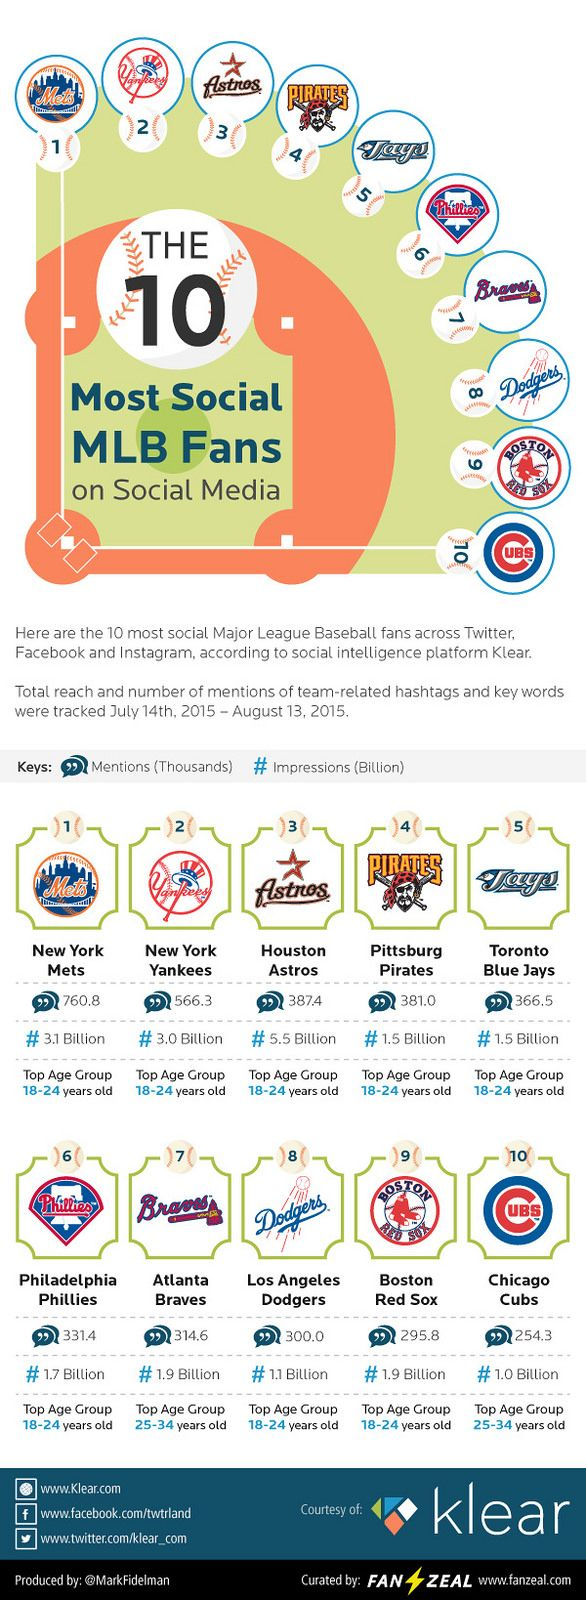 https://flic.kr/p/xvRFBS | Fanzeal 10-Loudest-Most-Social-MLB-Fans-1 | Despite trailing 9 teams' standings, The NY Mets boast the most social crowds in MLB since the All-Star game, according to a study conducted using social analytics platform Klear.   Between July 1 and August 13th, Mets fans generated 760 million Tweets, Facebook posts and photos on Instagram, which in turn generated 3.1 Billion impressions.